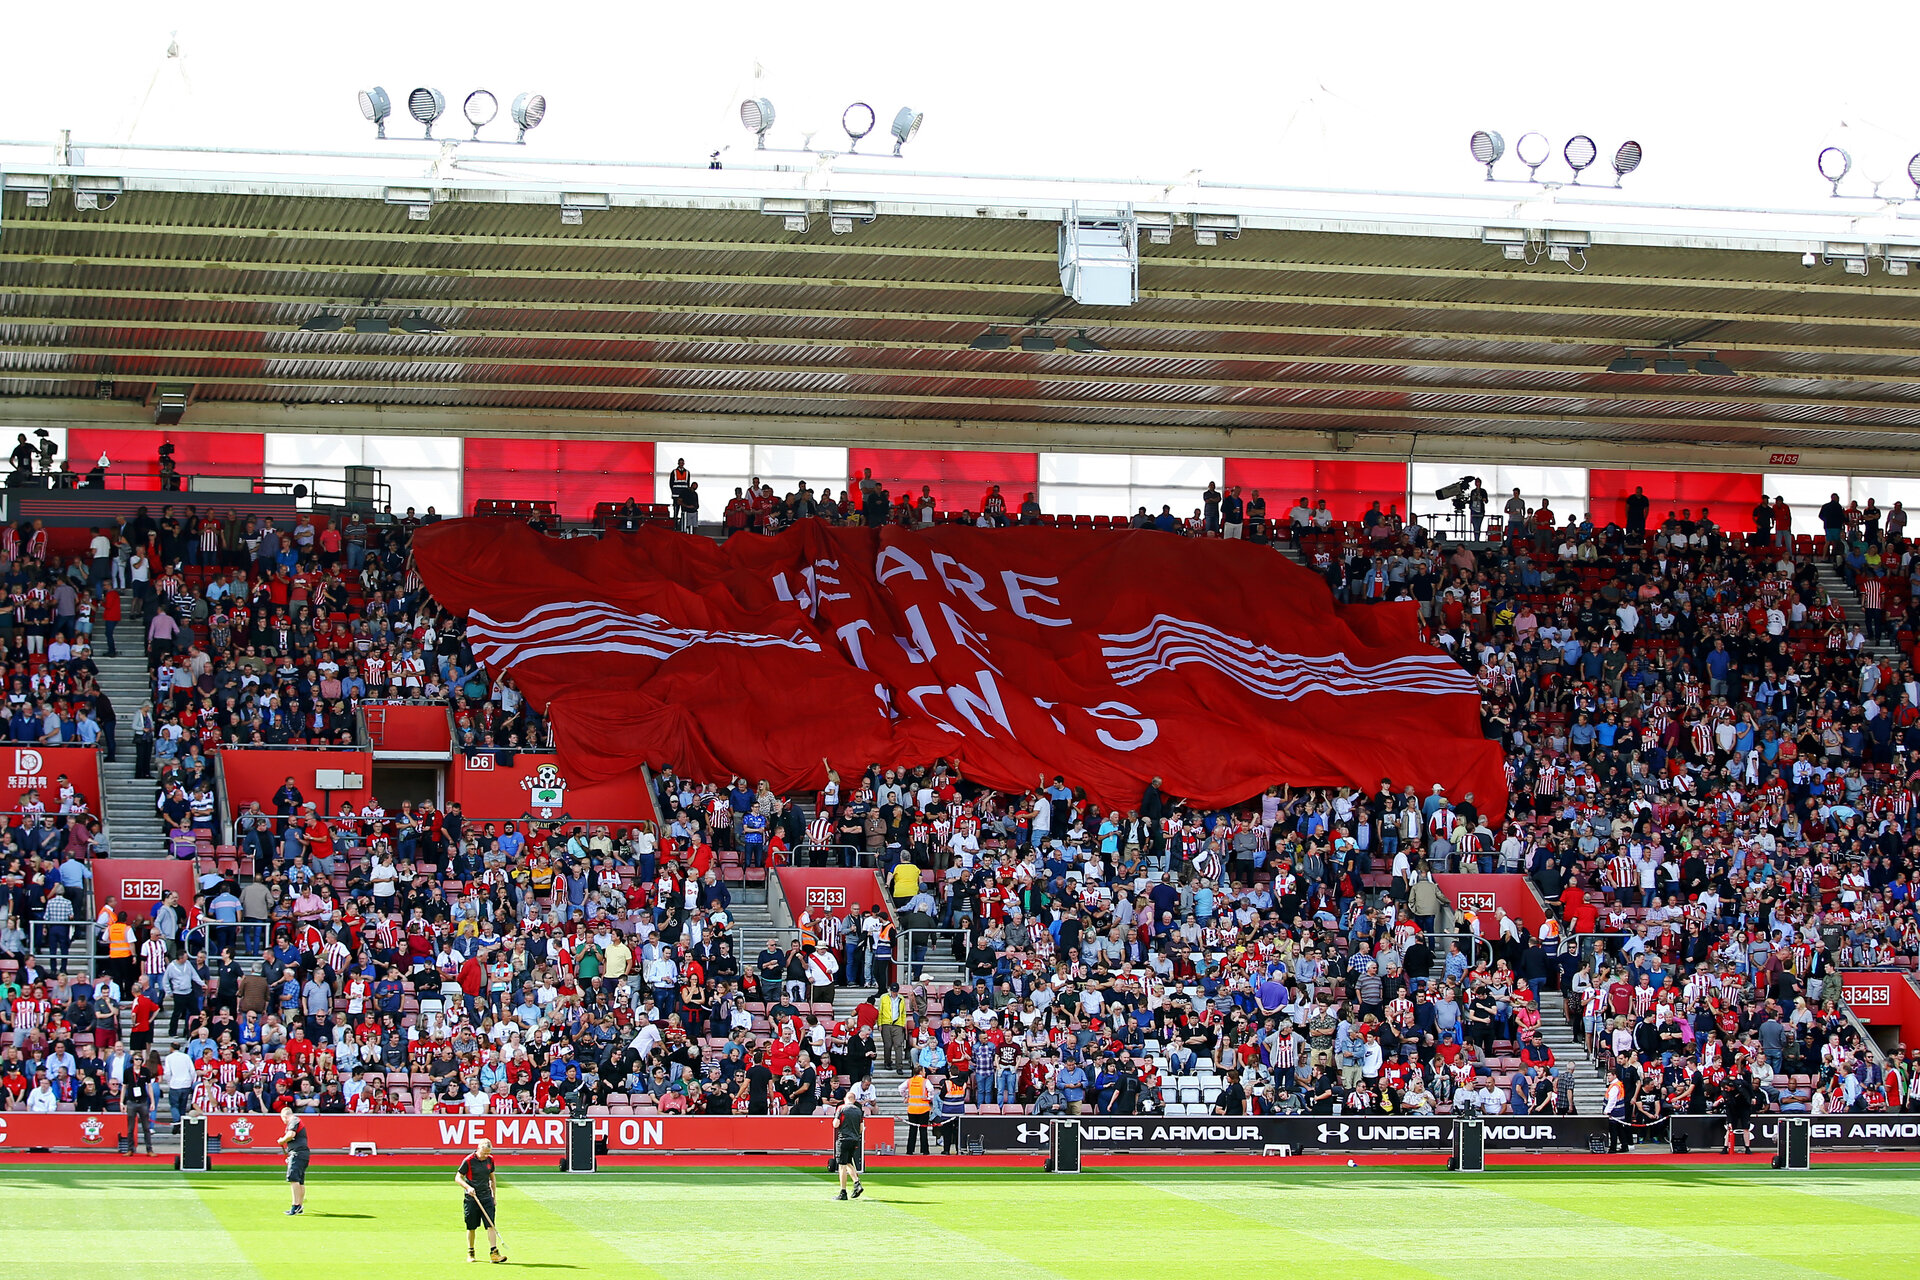 SOUTHAMPTON, ENGLAND - AUGUST 17: General View ahead of the Premier League match between Southampton FC and Liverpool FC at St Mary's Stadium on August 17, 2019 in Southampton, United Kingdom. (Photo by James Bridle - Southampton FC/Southampton FC via Getty Images)